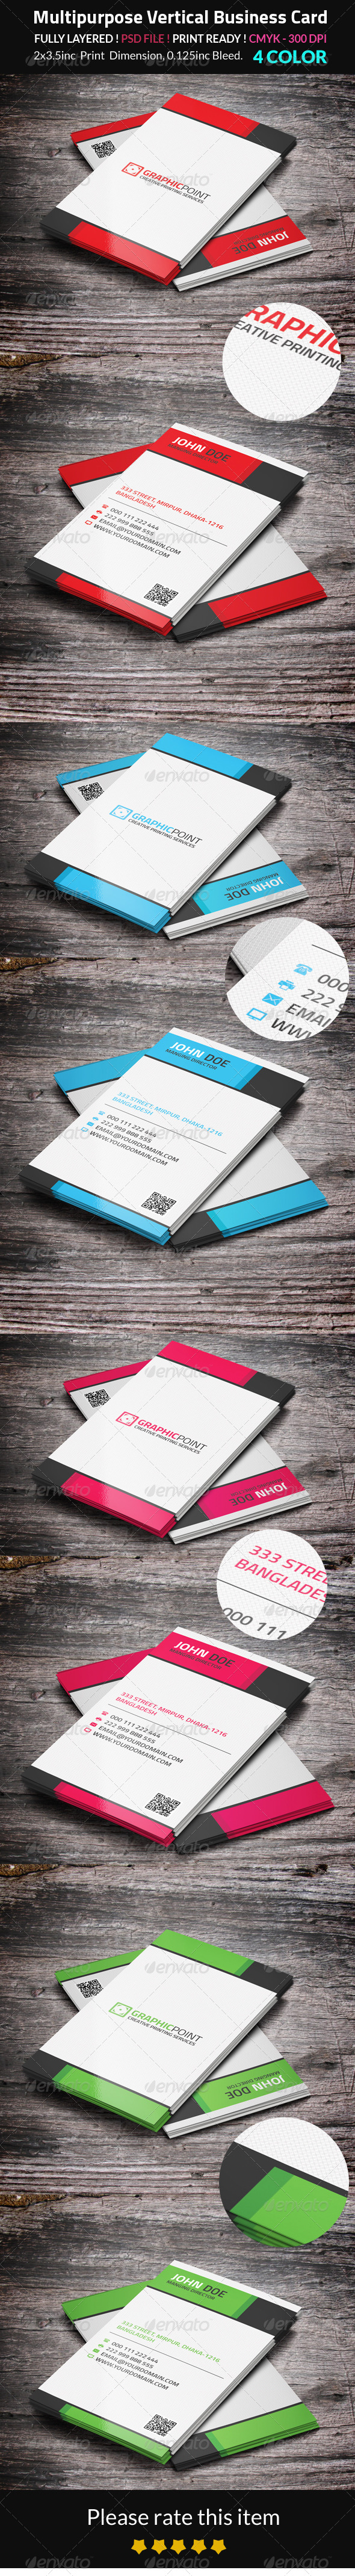 GraphicRiver Multipurpose Vertical Business Card 8547084